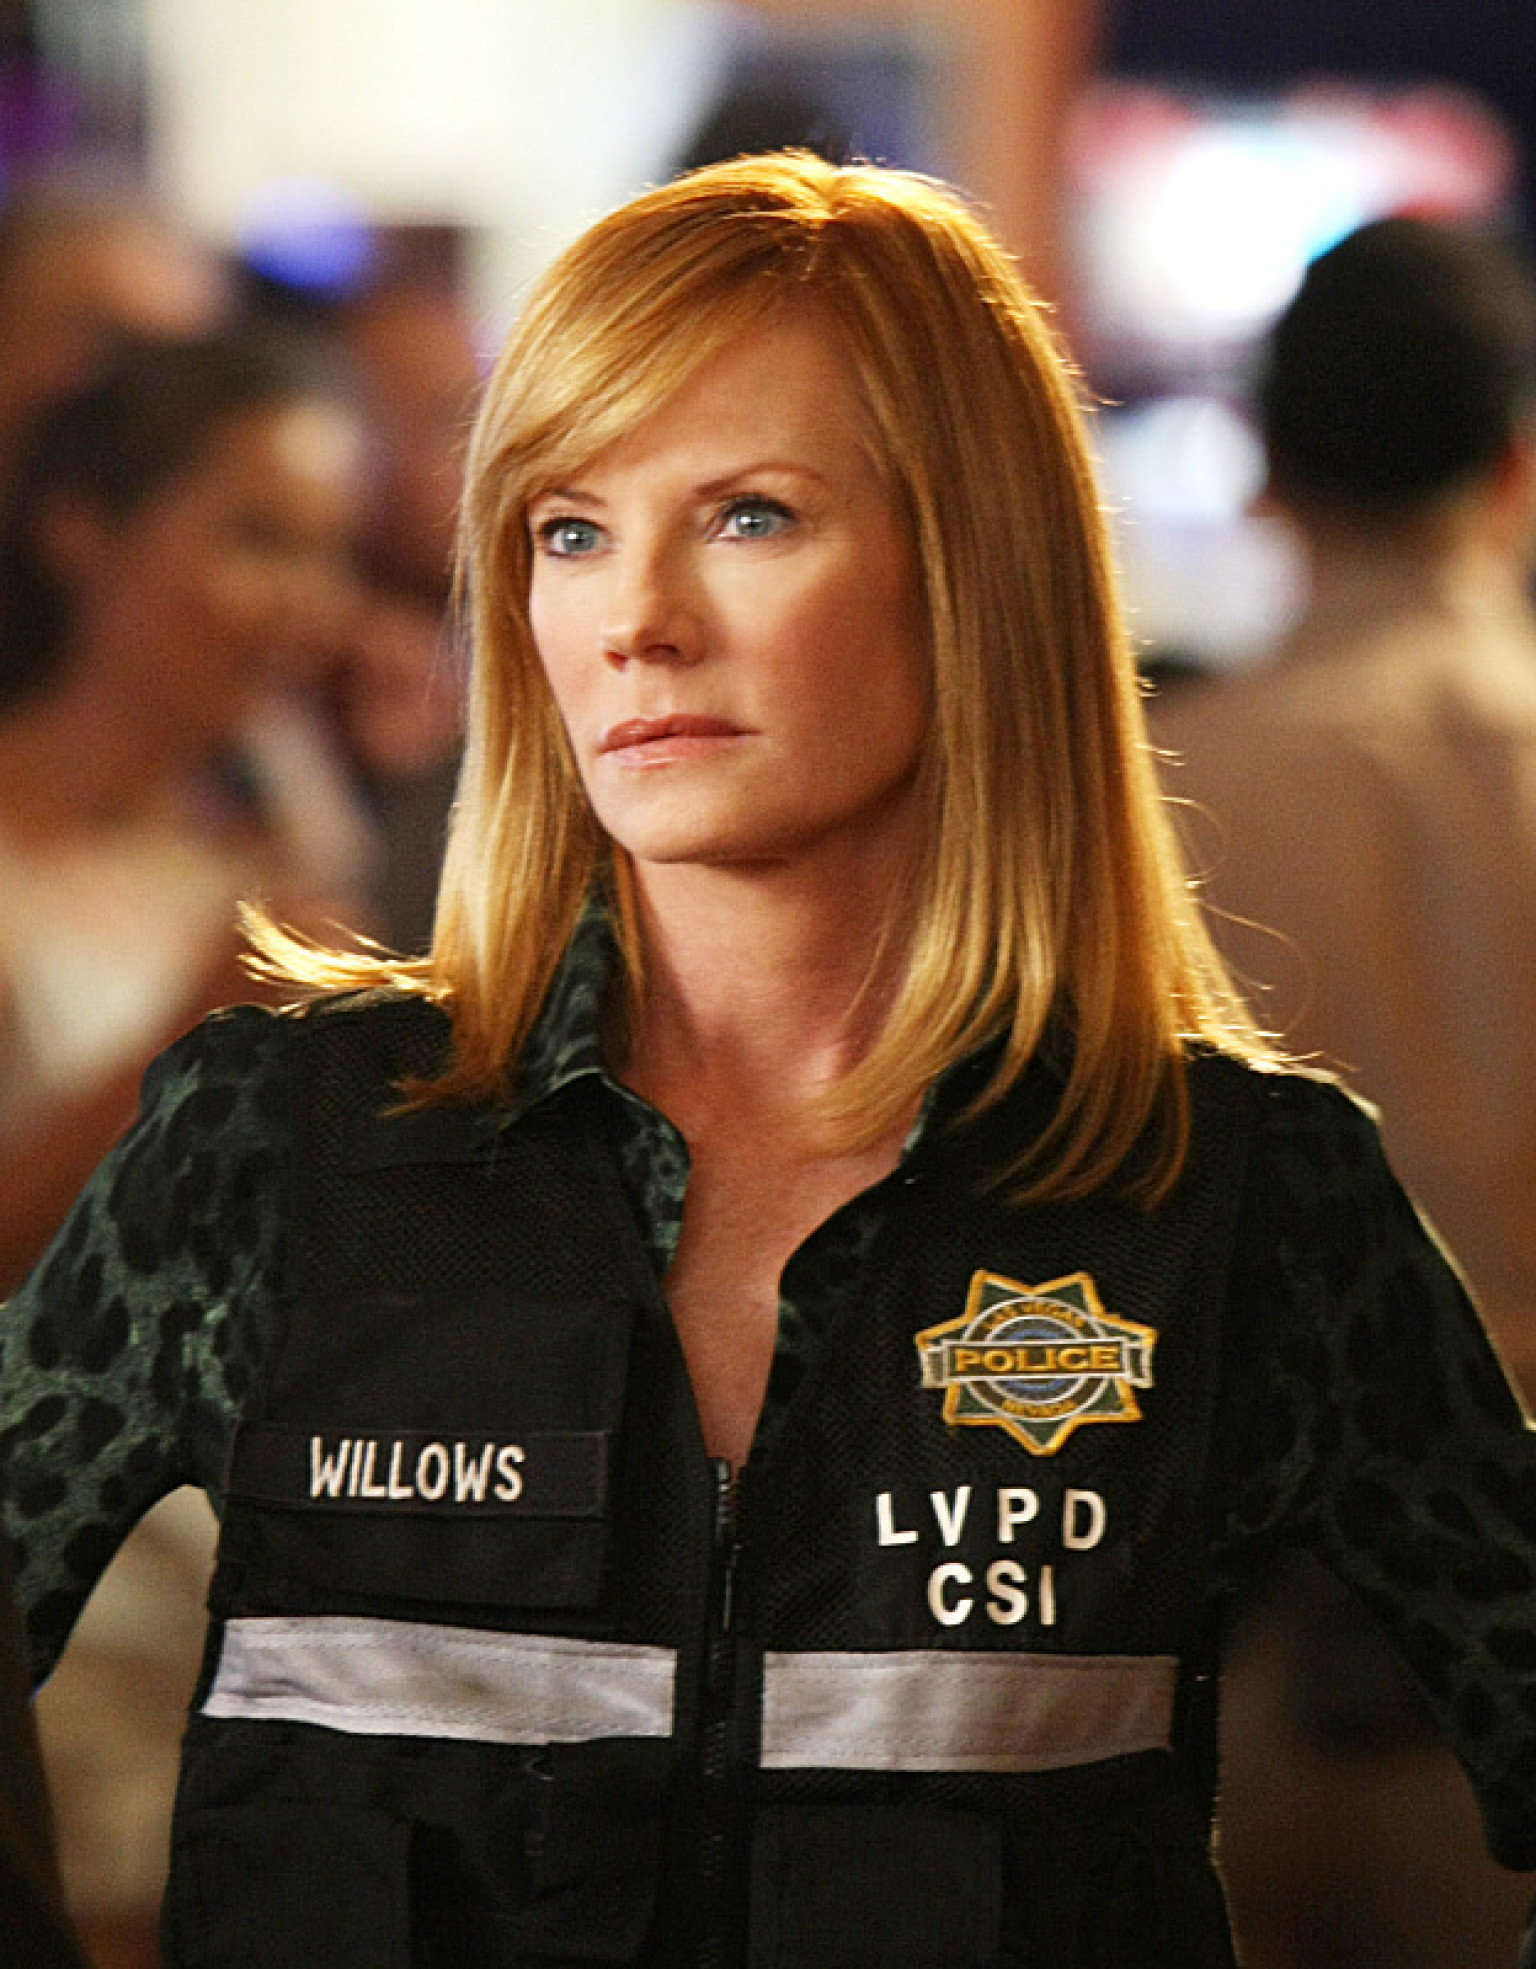 marg helgenberger pronunciationmarg helgenberger facebook, marg helgenberger csi, marg helgenberger pronunciation, marg helgenberger 2002, marg helgenberger 2016, marg helgenberger instagram, marg helgenberger, marg helgenberger net worth, marg helgenberger under the dome, marg helgenberger images, marg helgenberger mr skin